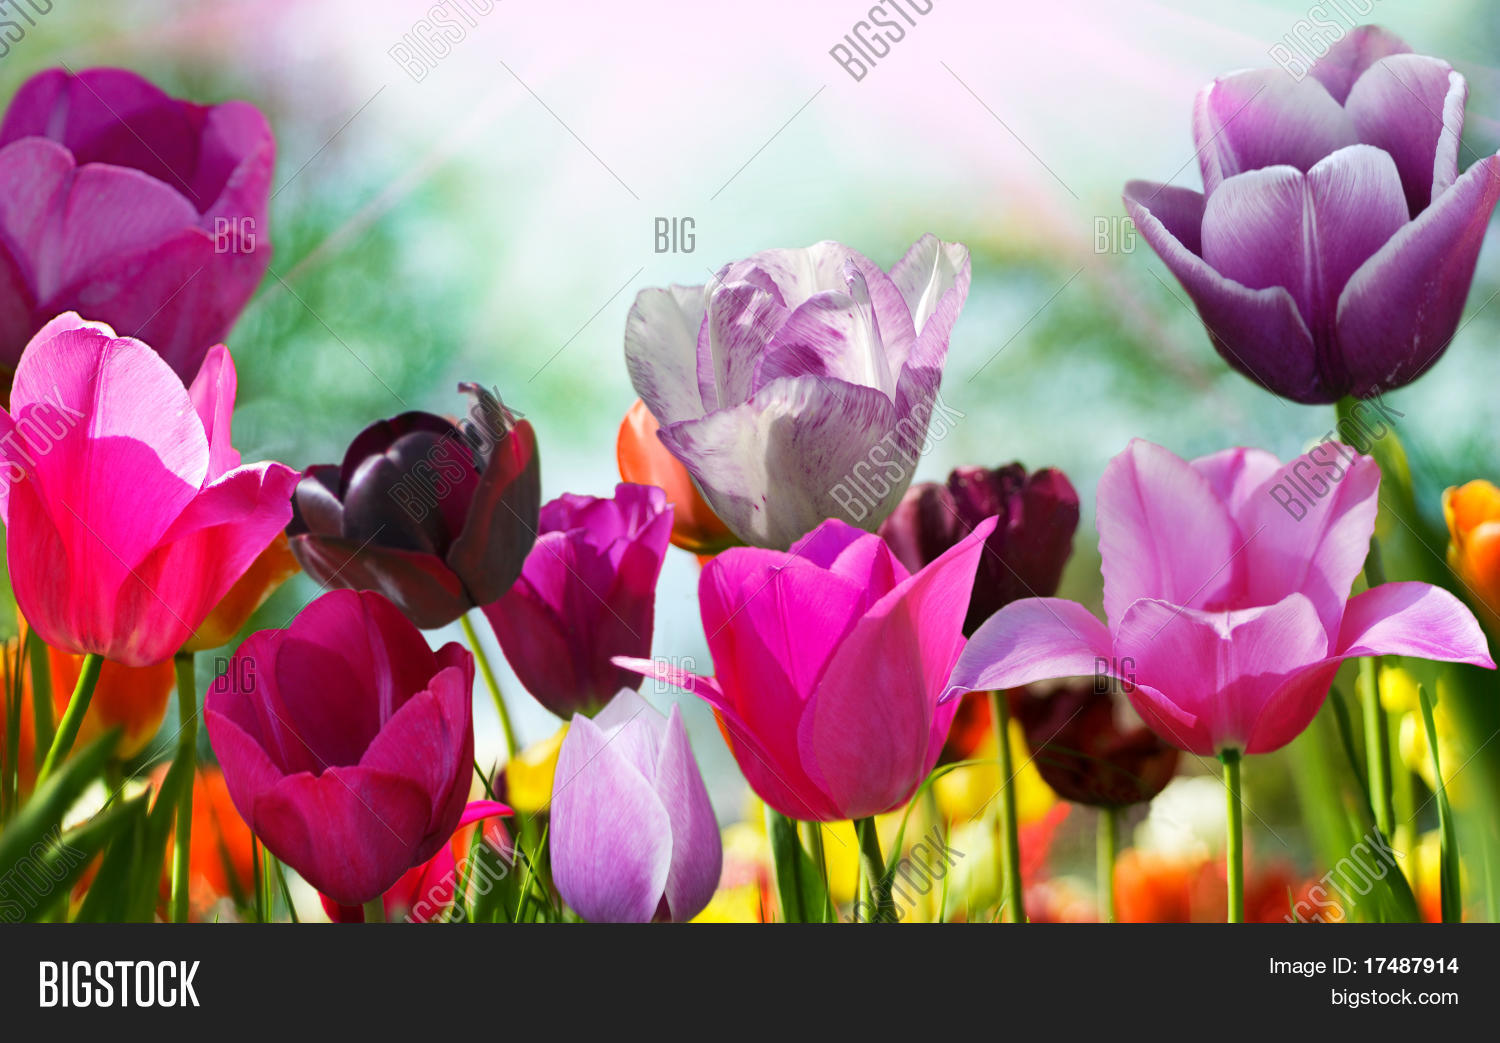 Beautiful Spring Image Photo Free Trial Bigstock